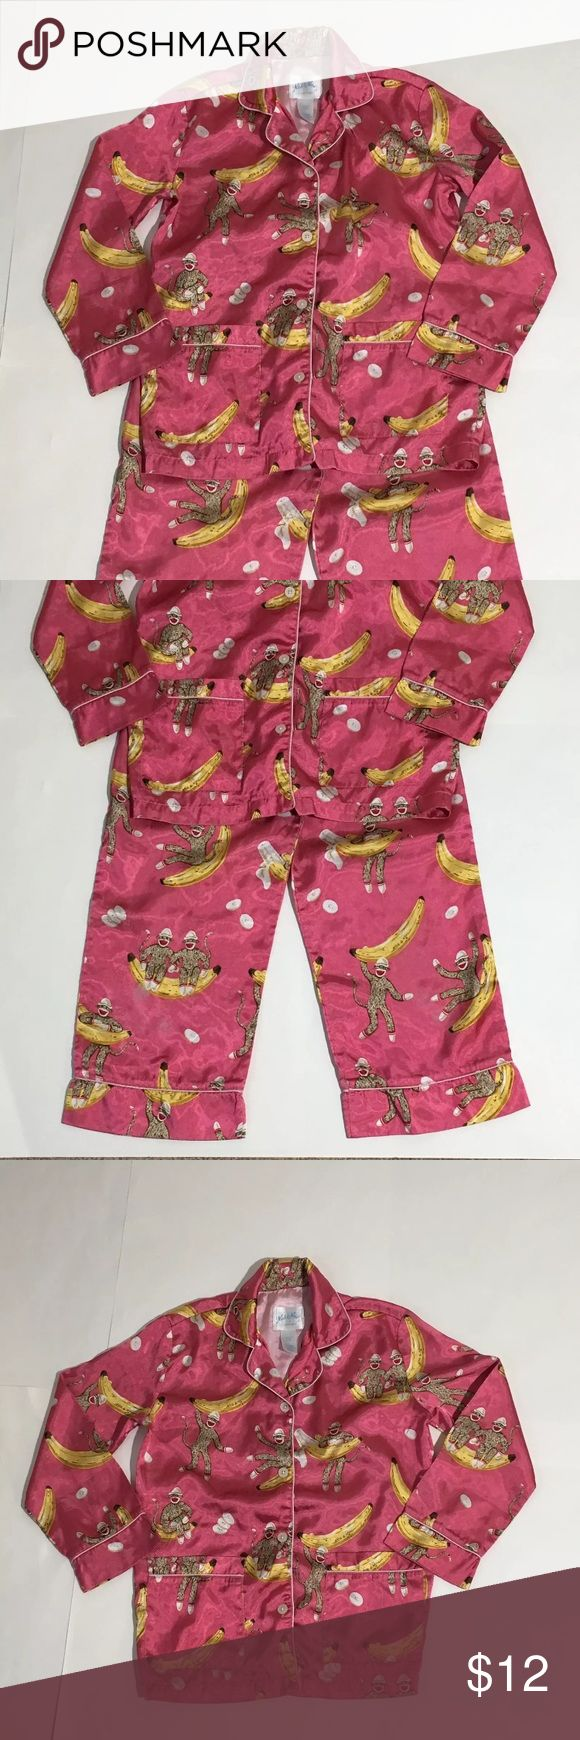 Nick & Nora Pink Sock Monkey Bananas Pajamas 6x Nick And Nora Girls pink sock monkey and bananas long sleeve and pants pajama set! Size S 6-6X Nick & Nora Pajamas Pajama Sets